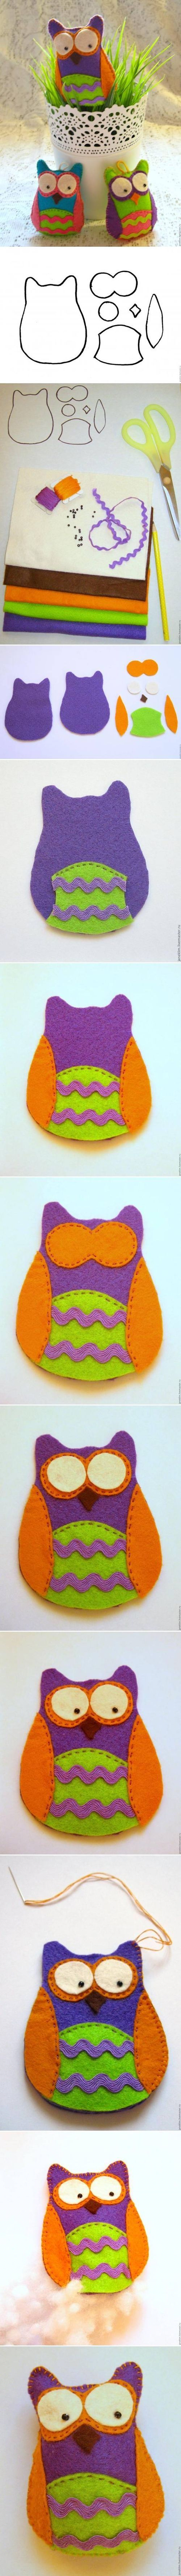 DIY Felt Owl diy craft crafts craft ideas easy crafts diy crafts easy diy kids crafts kids diy easy craft diy sewing kids craft sewing ideas sewing idea diy idas sewing crafts